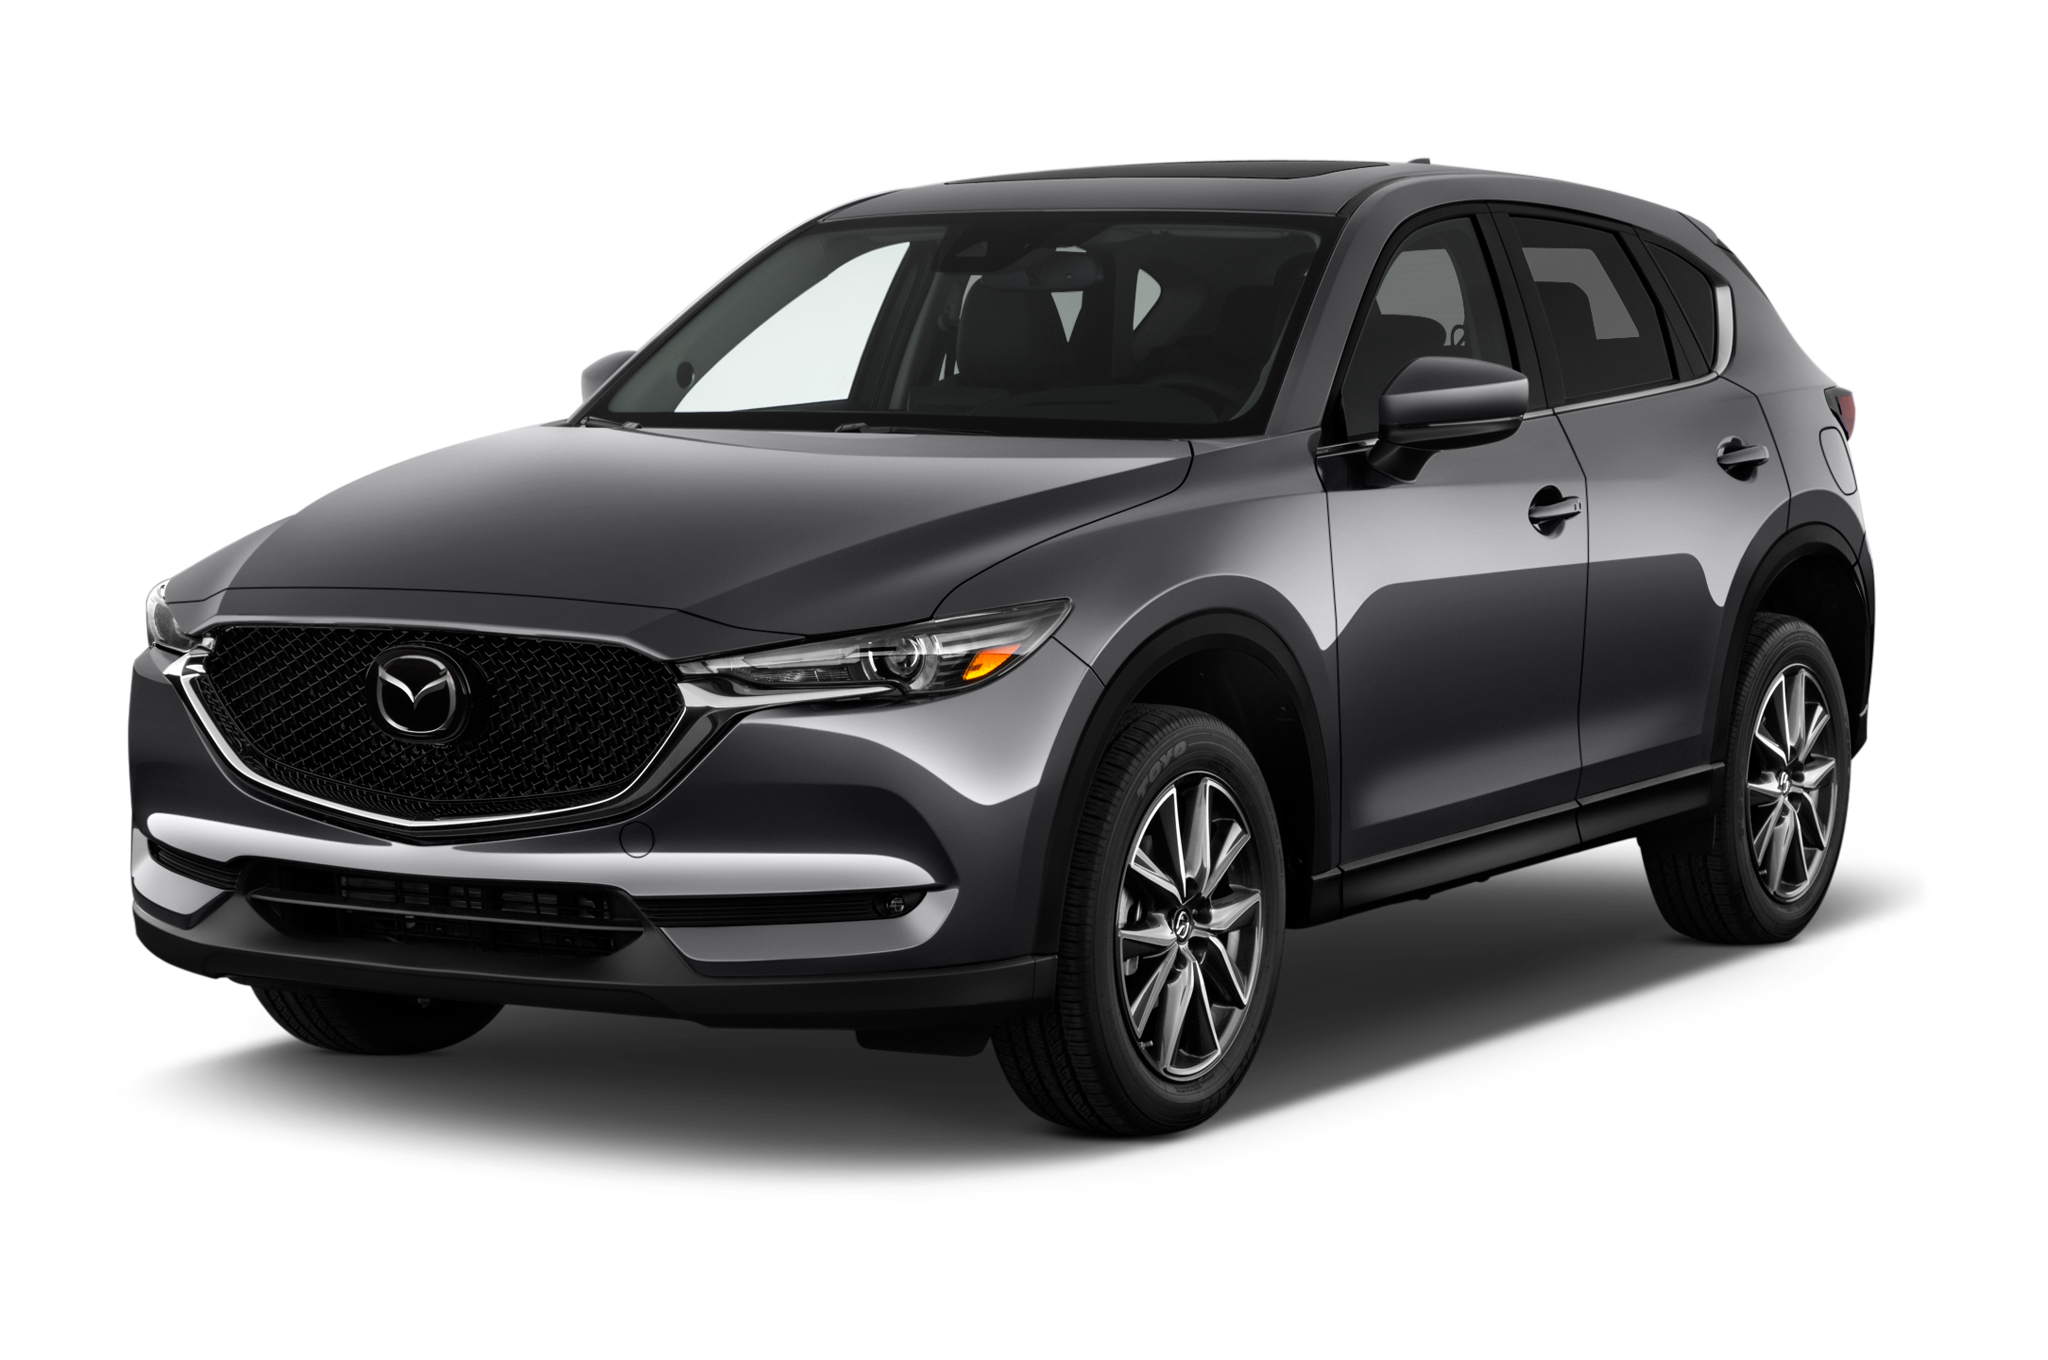 2018 mazda cx 5 diesel epa rated up to 28 31 mpg. Black Bedroom Furniture Sets. Home Design Ideas